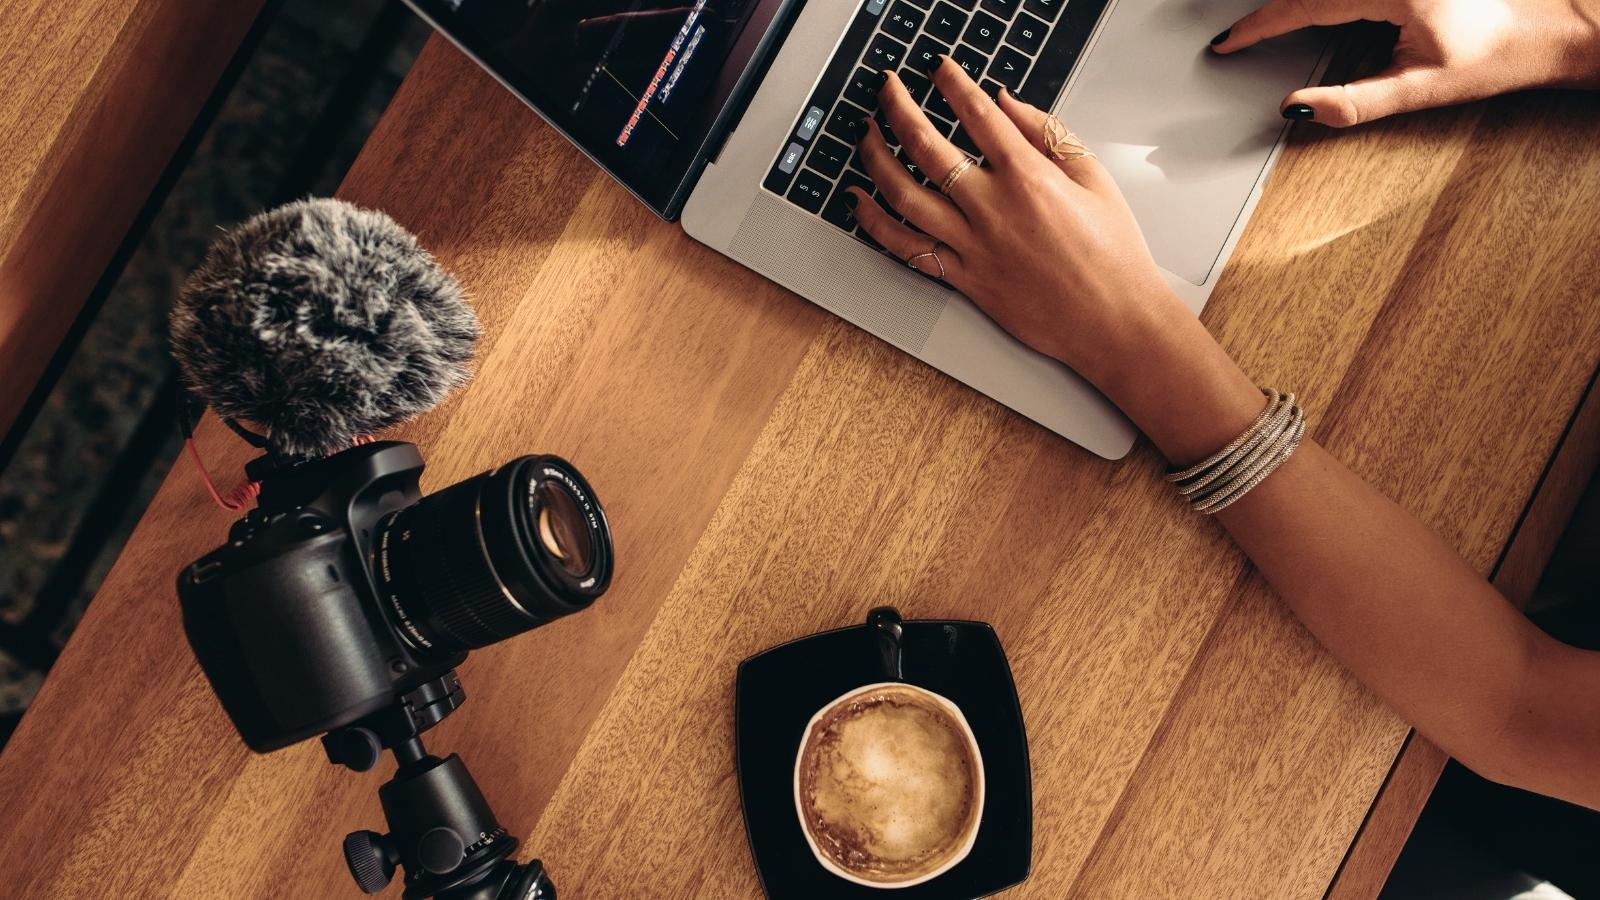 vlog editing to increase your vlog's production